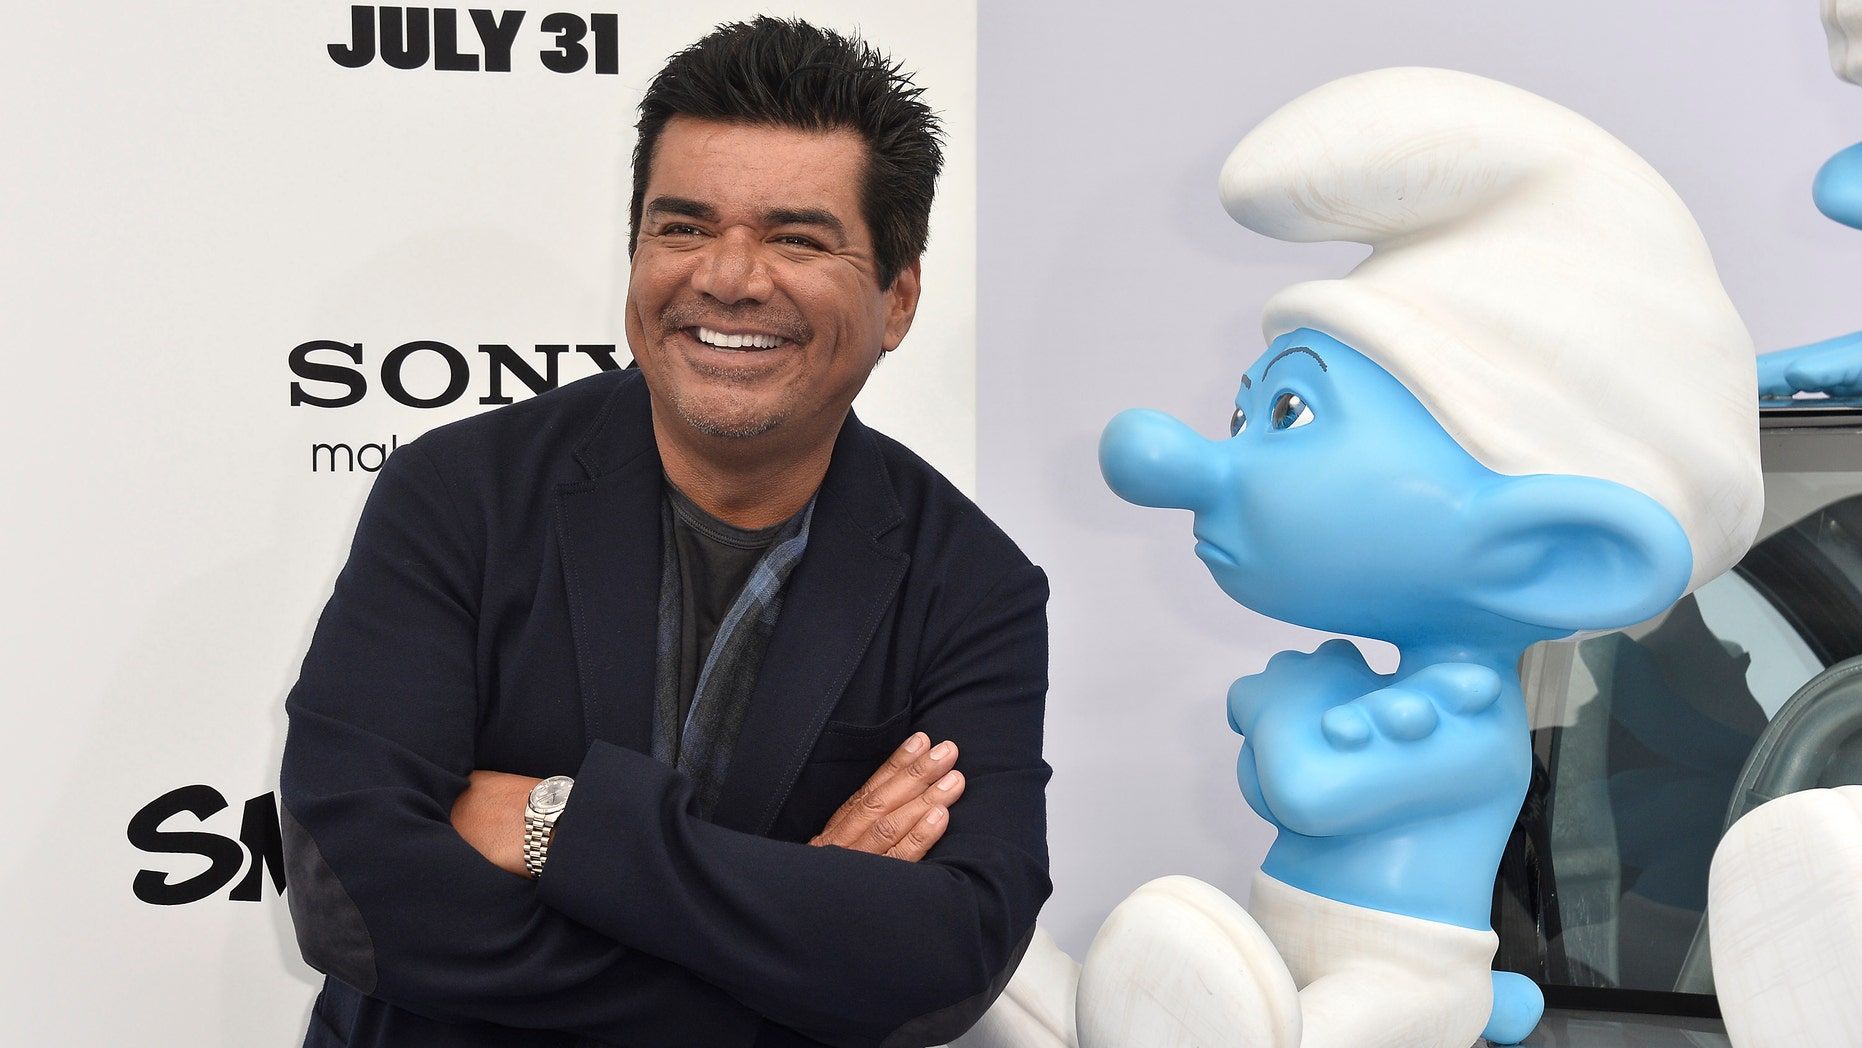 """WESTWOOD, CA - JULY 28:  Actor George Lopez attends the premiere of Columbia Pictures' """"Smurfs 2"""" at Regency Village Theatre on July 28, 2013 in Westwood, California.  (Photo by Frazer Harrison/Getty Images)"""